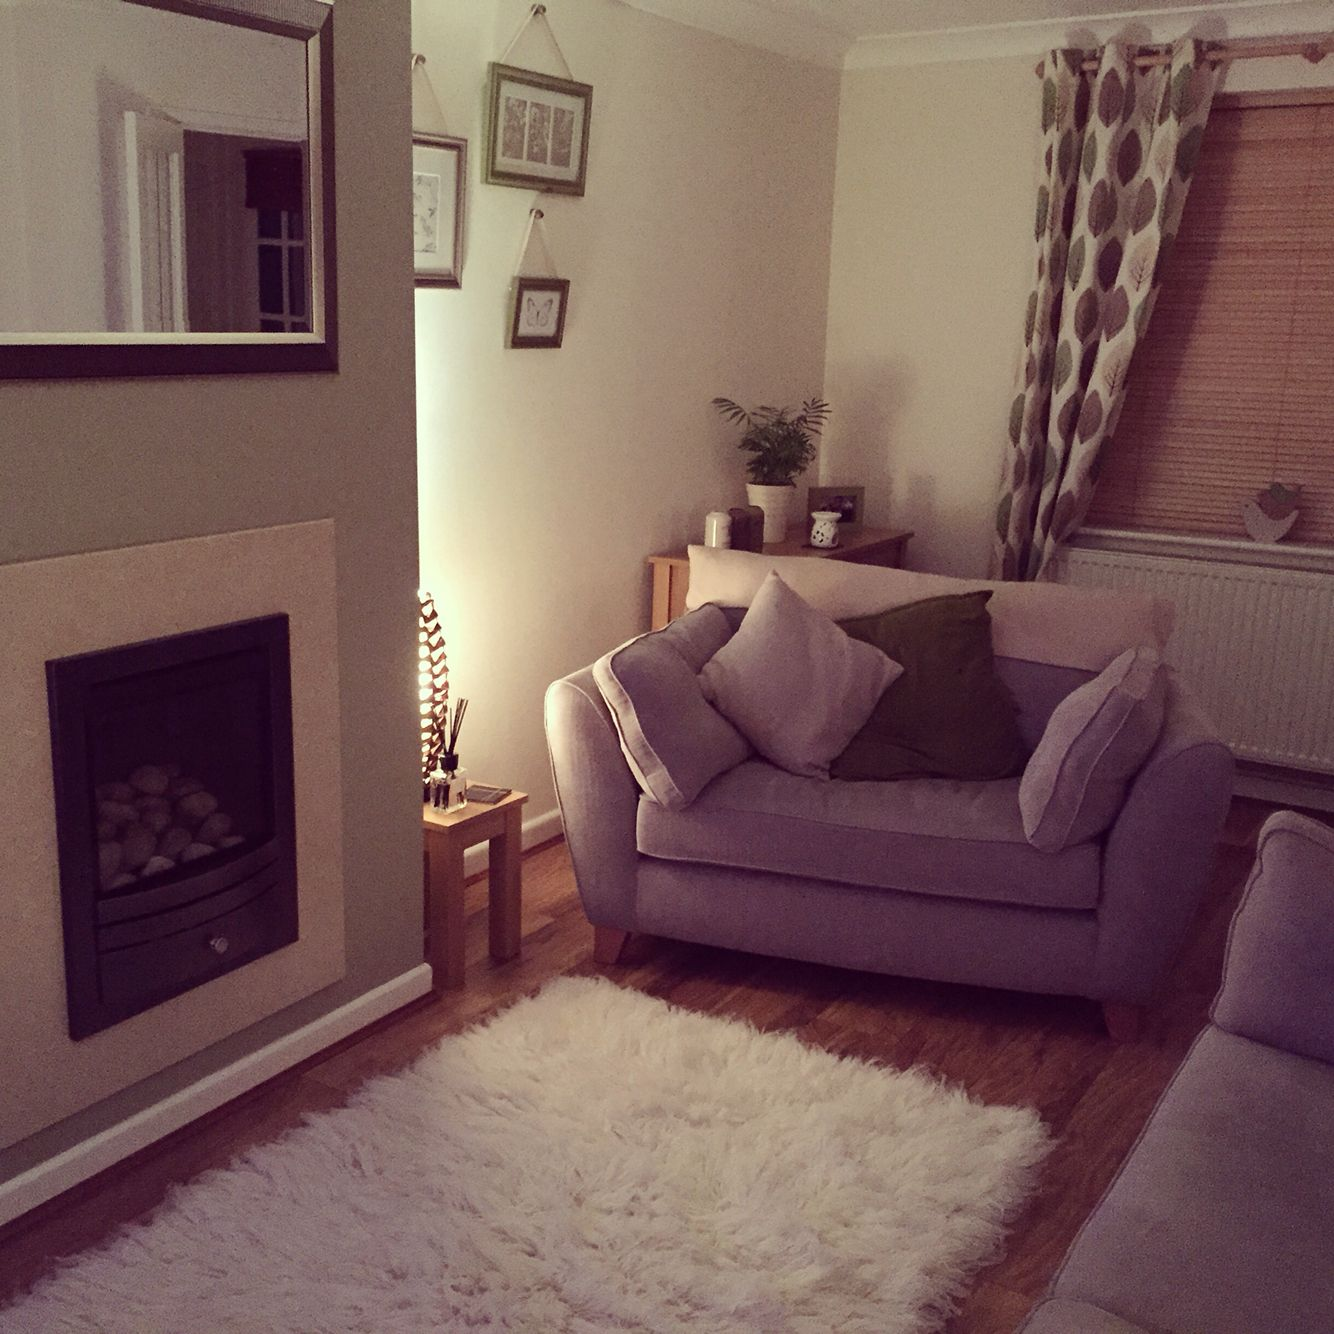 Superior Dulux Overtly Olive Living Room. Green Cosy Homely Next Home Natural Great Ideas